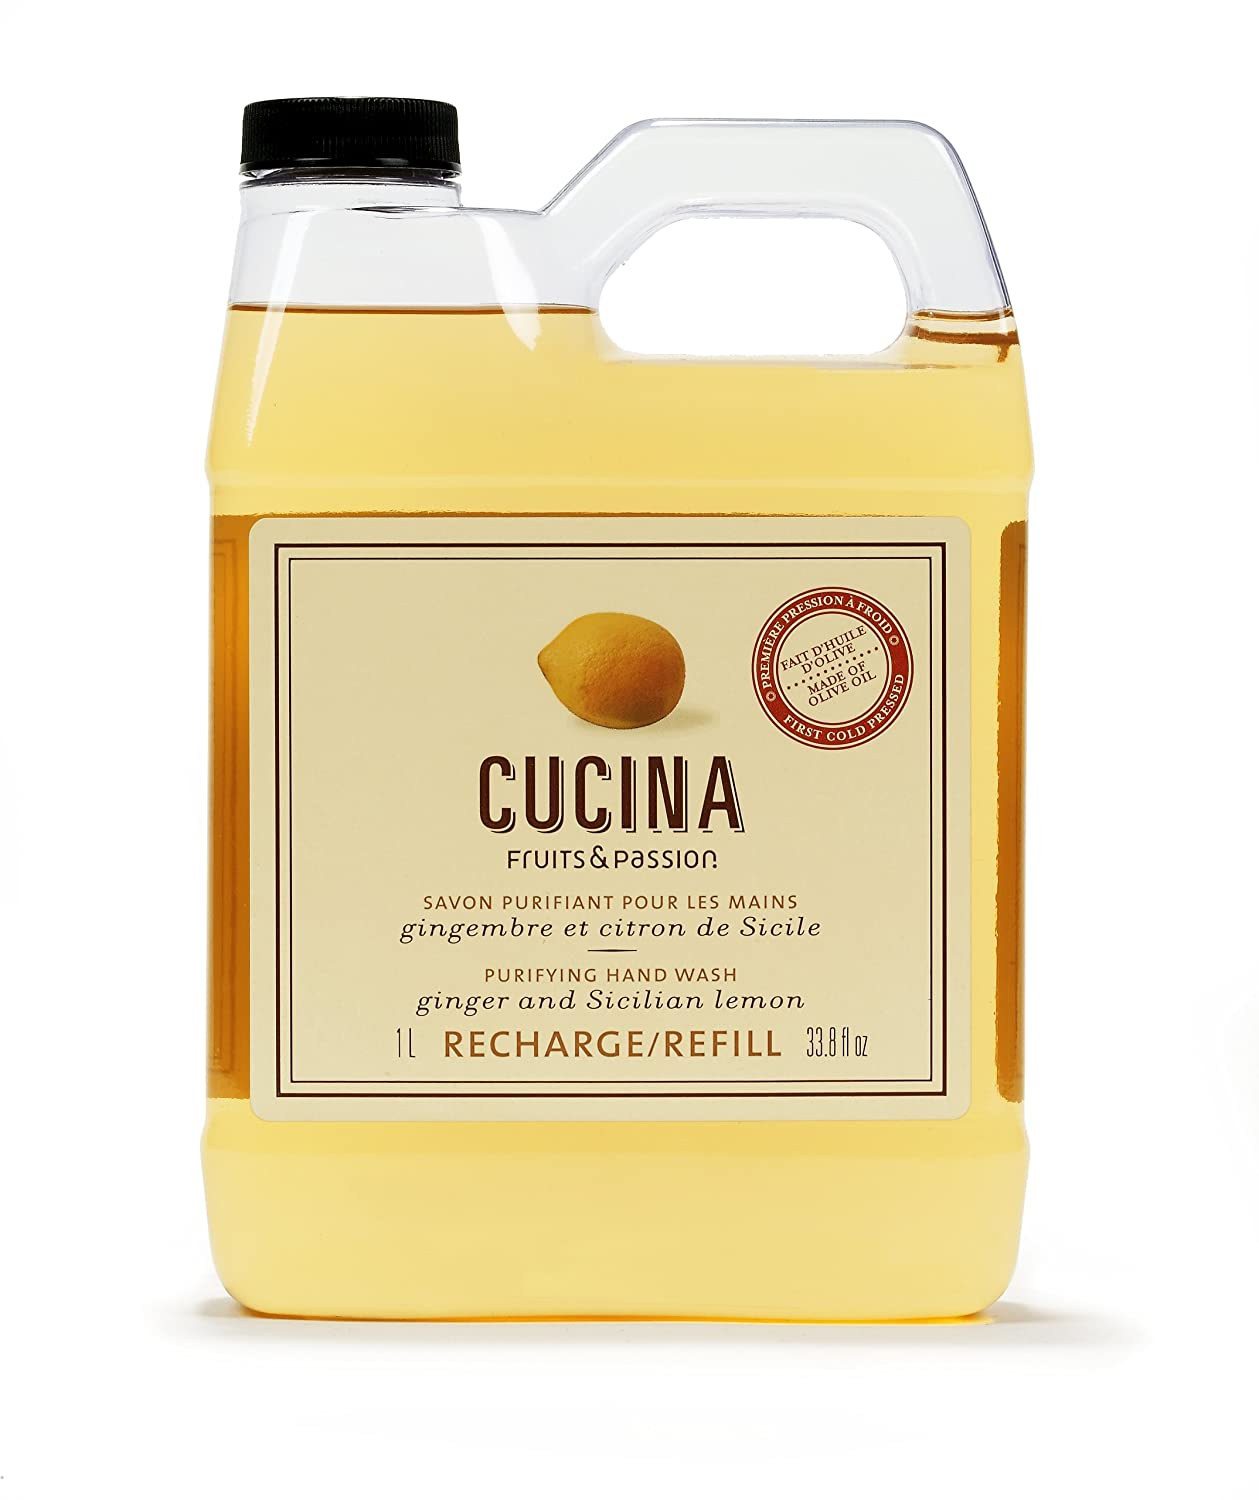 Fruits & Passion Cucina Purifying Hand Wash Refill - 33.8 Fl. Oz ...